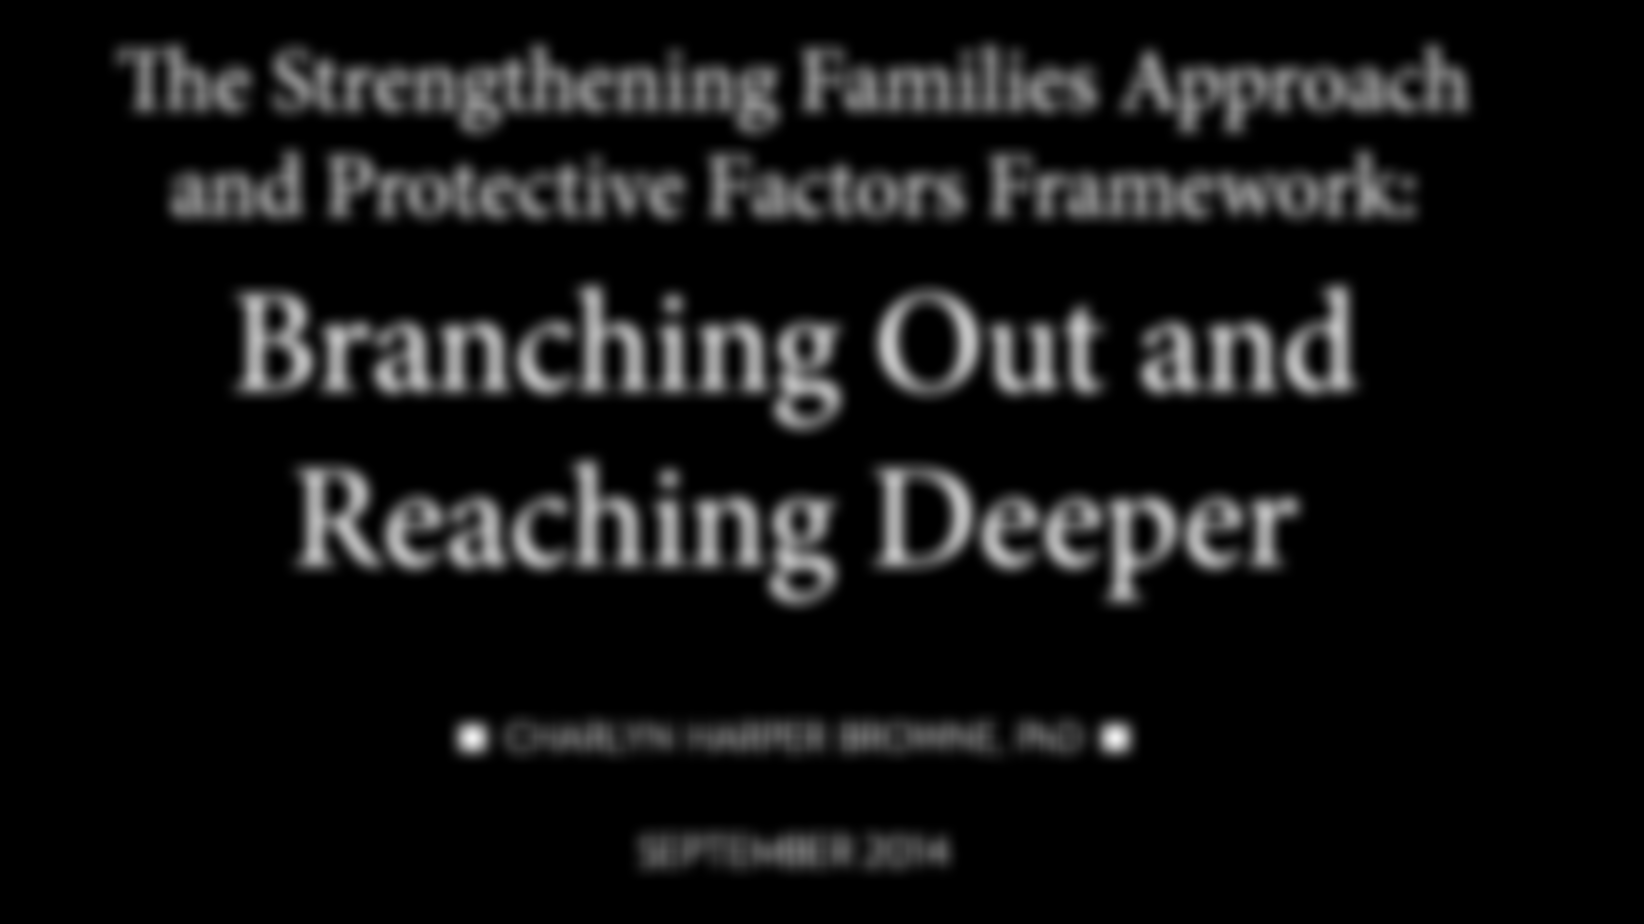 The Strengthening Families Approach and Protective Factors Framework: